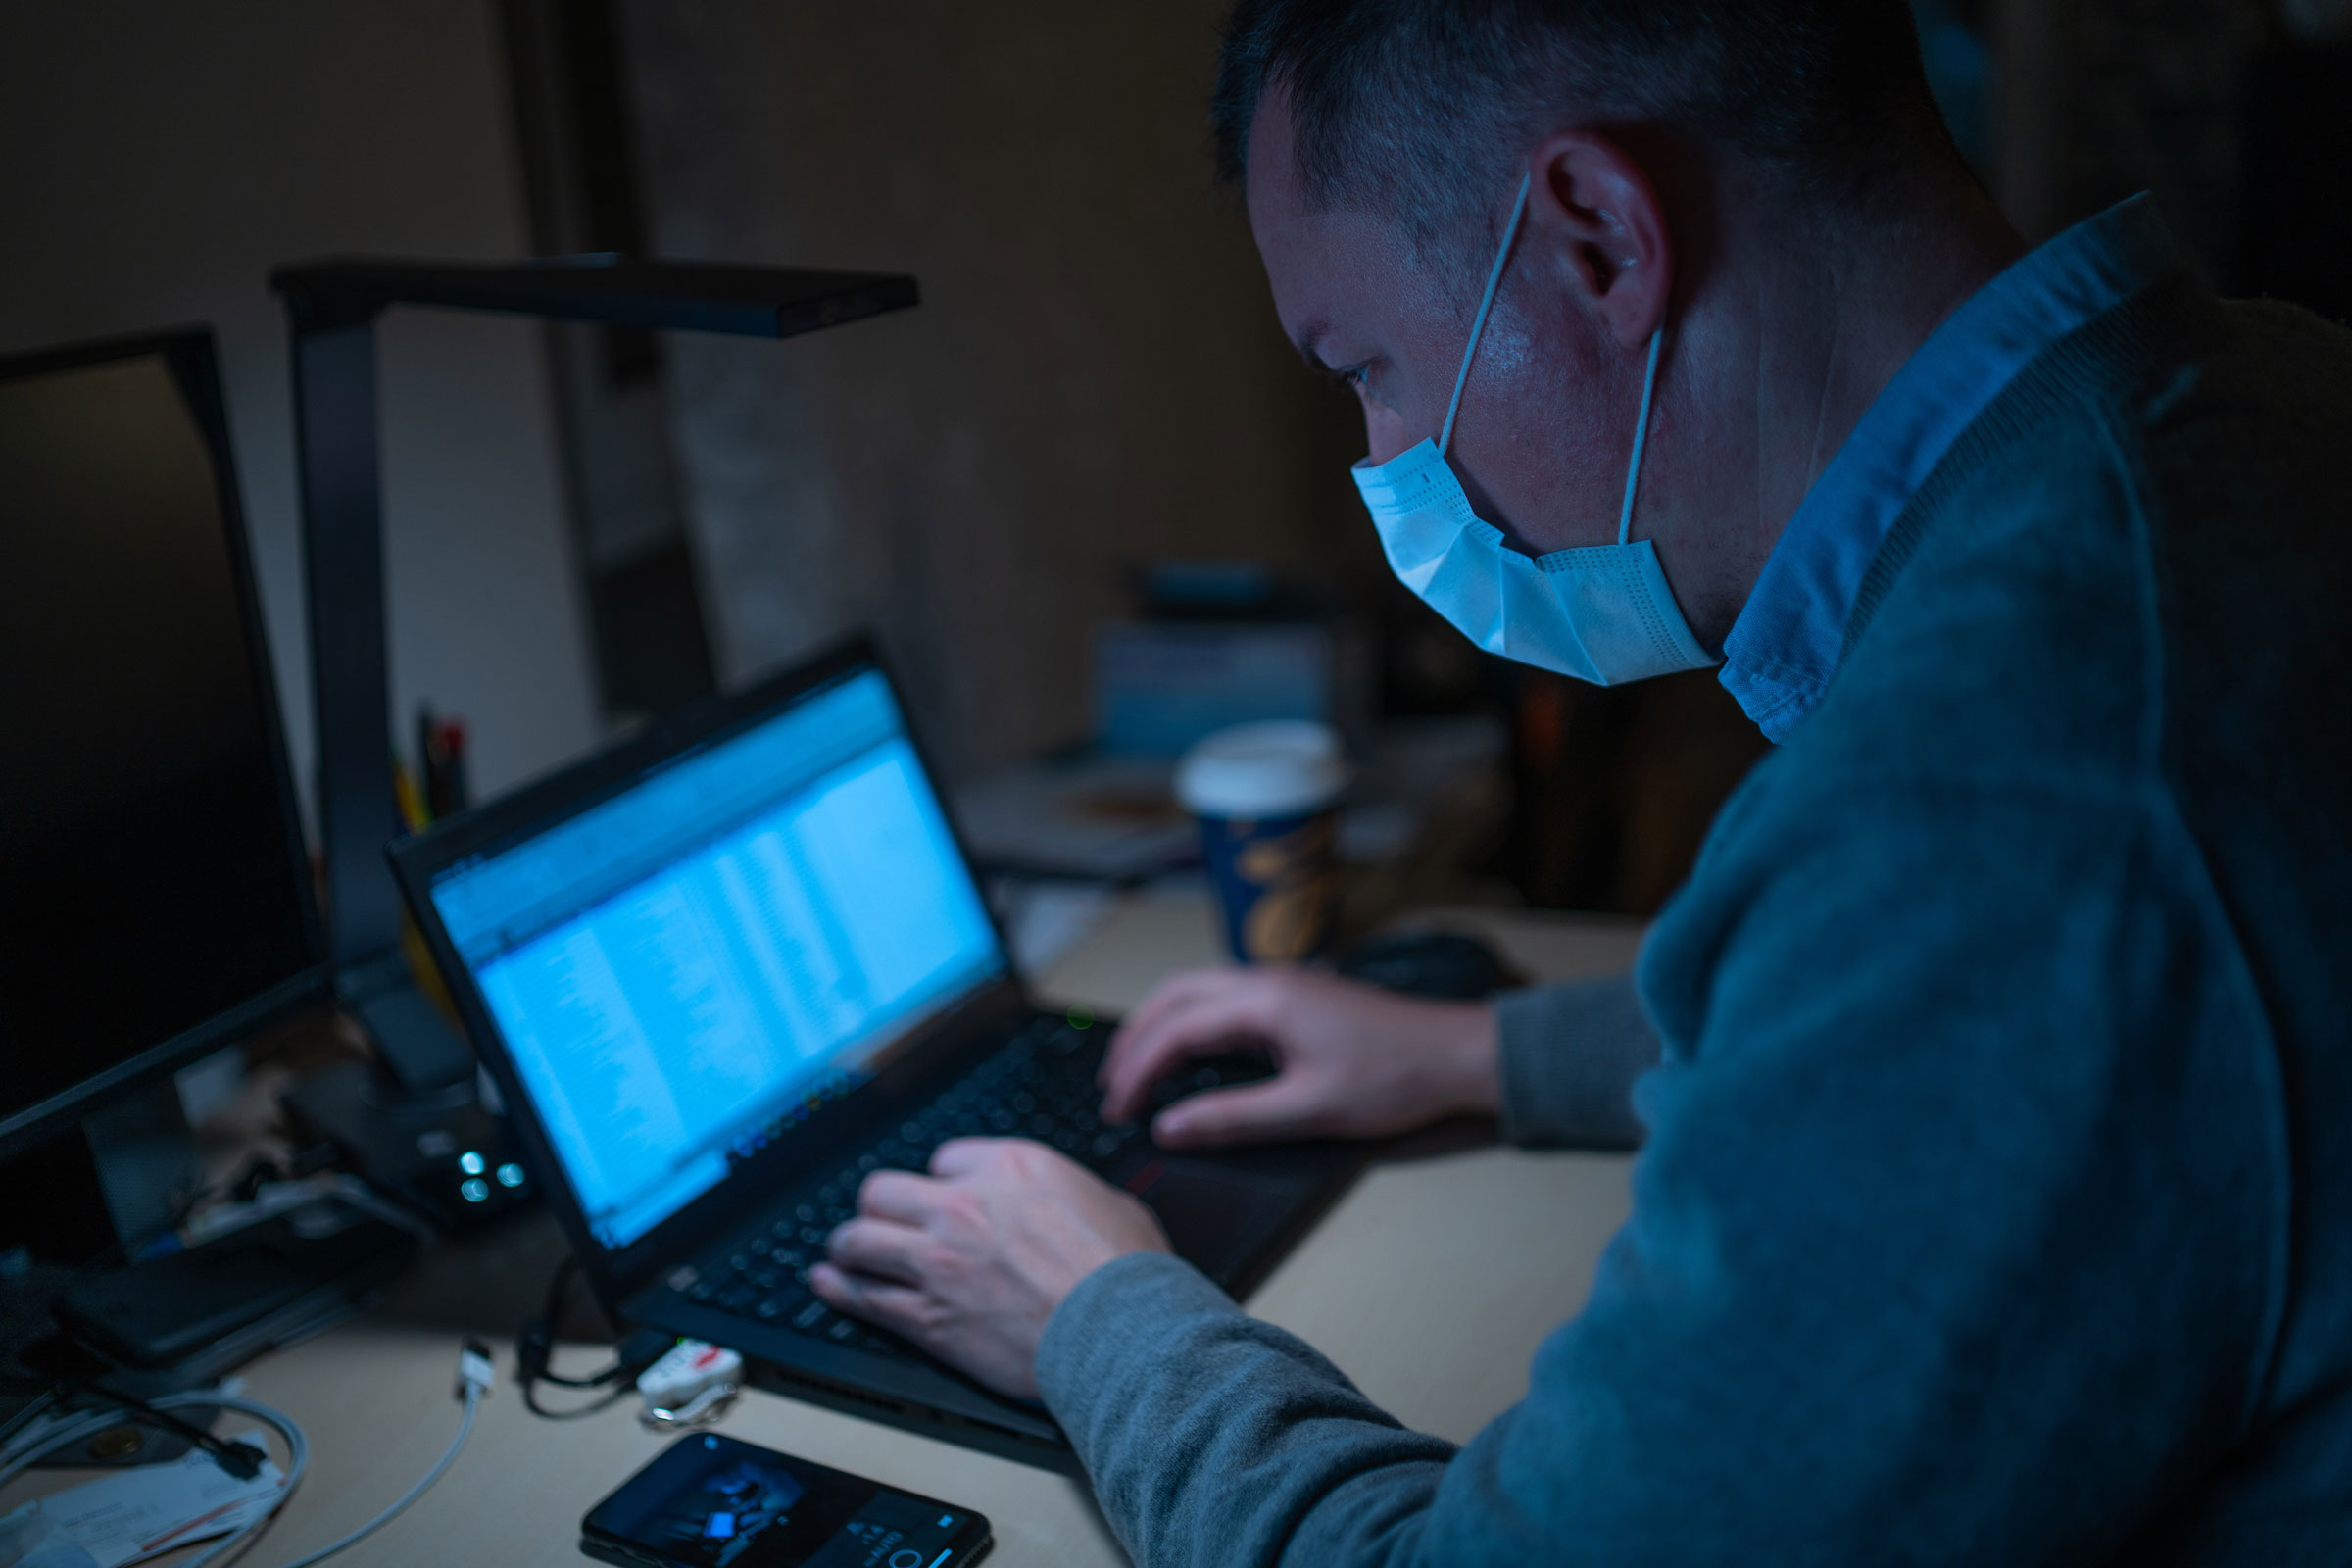 A man in a mask working on a laptop in a dimly lit room